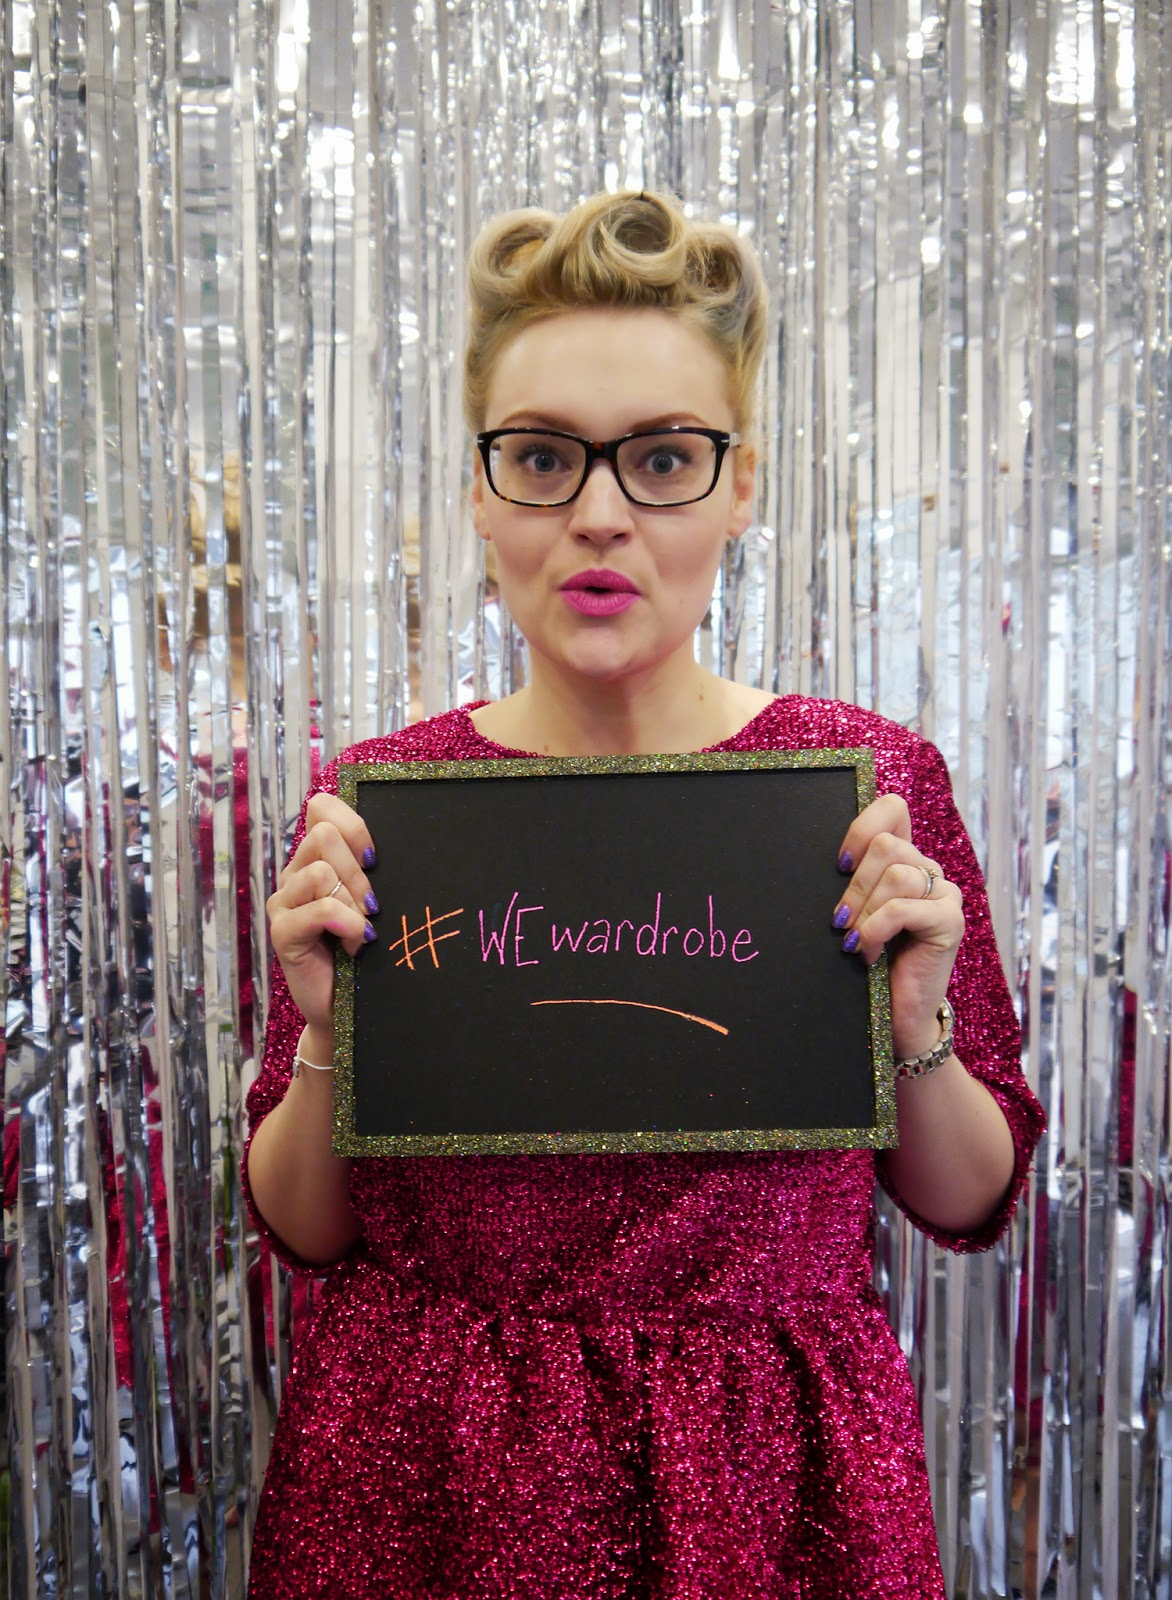 photobooth, DIY, sparkly, chalkboard, party, sequin dress, VintageStyleMe, victory rolls, Betty Garble, pout